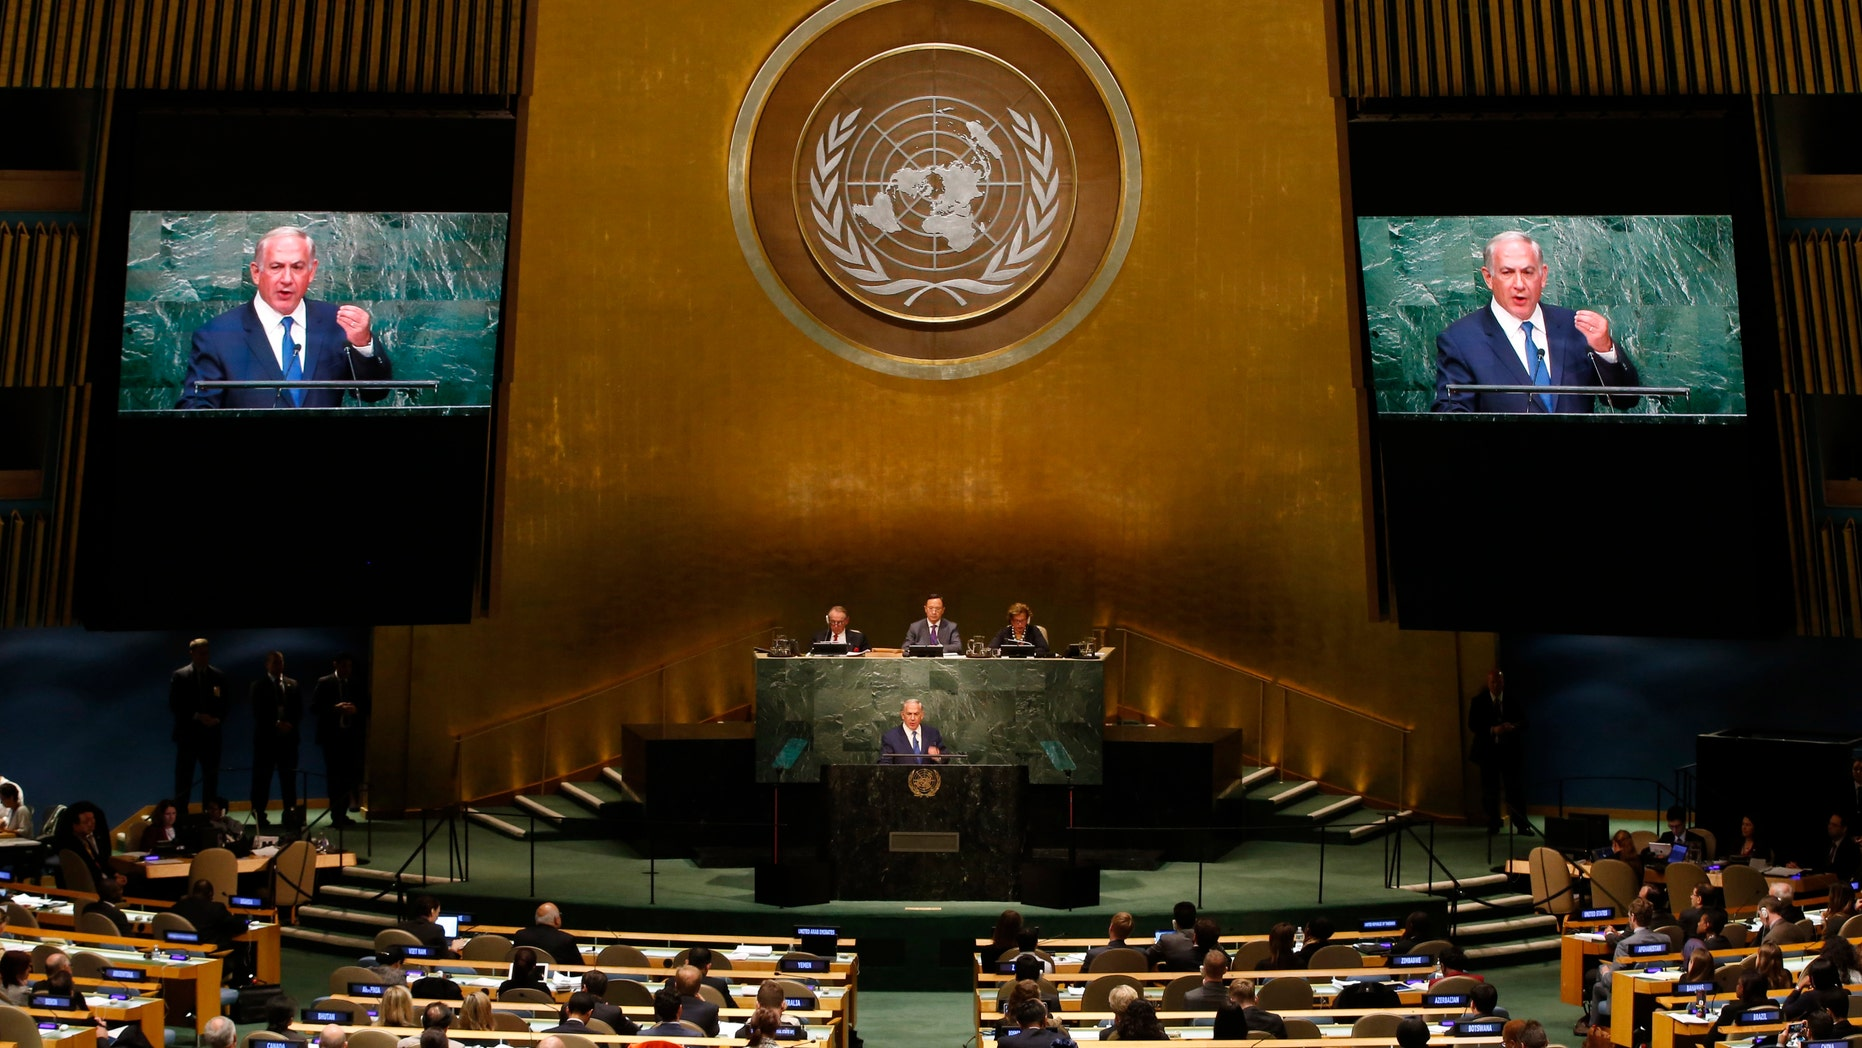 File photo - Israeli Prime Minister Benjamin Netanyahu addresses attendees during the 70th session of the United Nations General Assembly at the U.N. Headquarters in New York, Oct. 1, 2015. (REUTERS/Mike Segar)